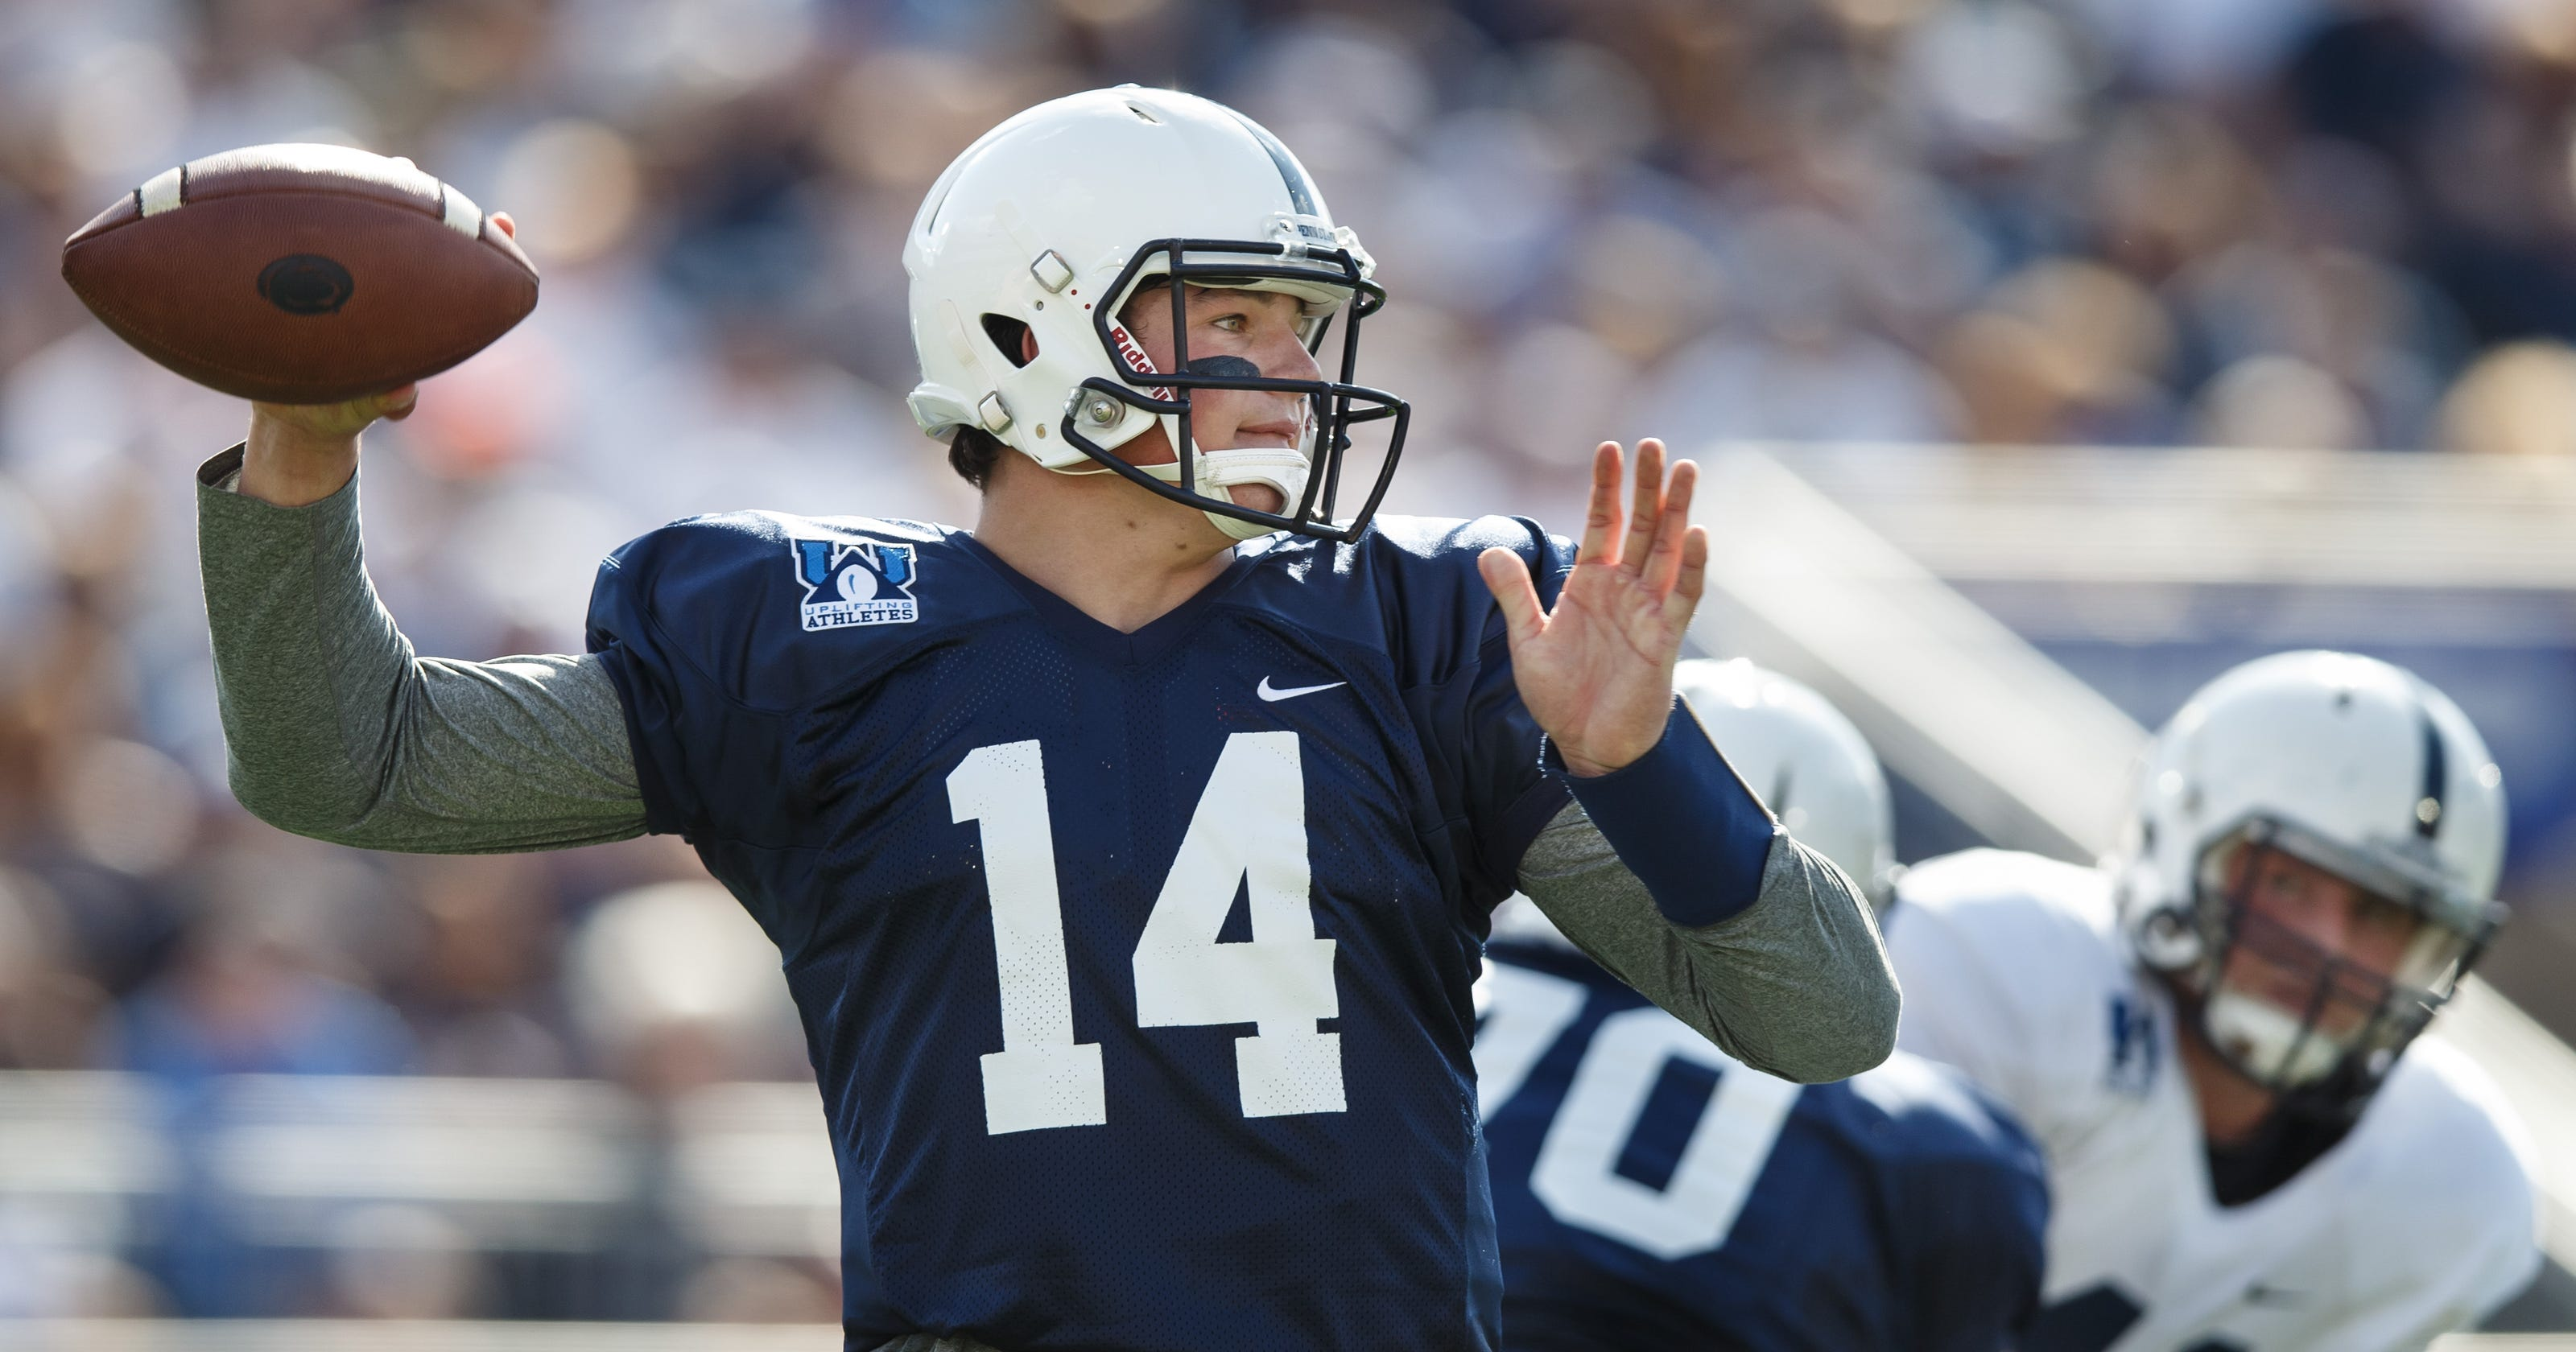 Penn State to remove names from back of football jerseys 548b8fa90d83